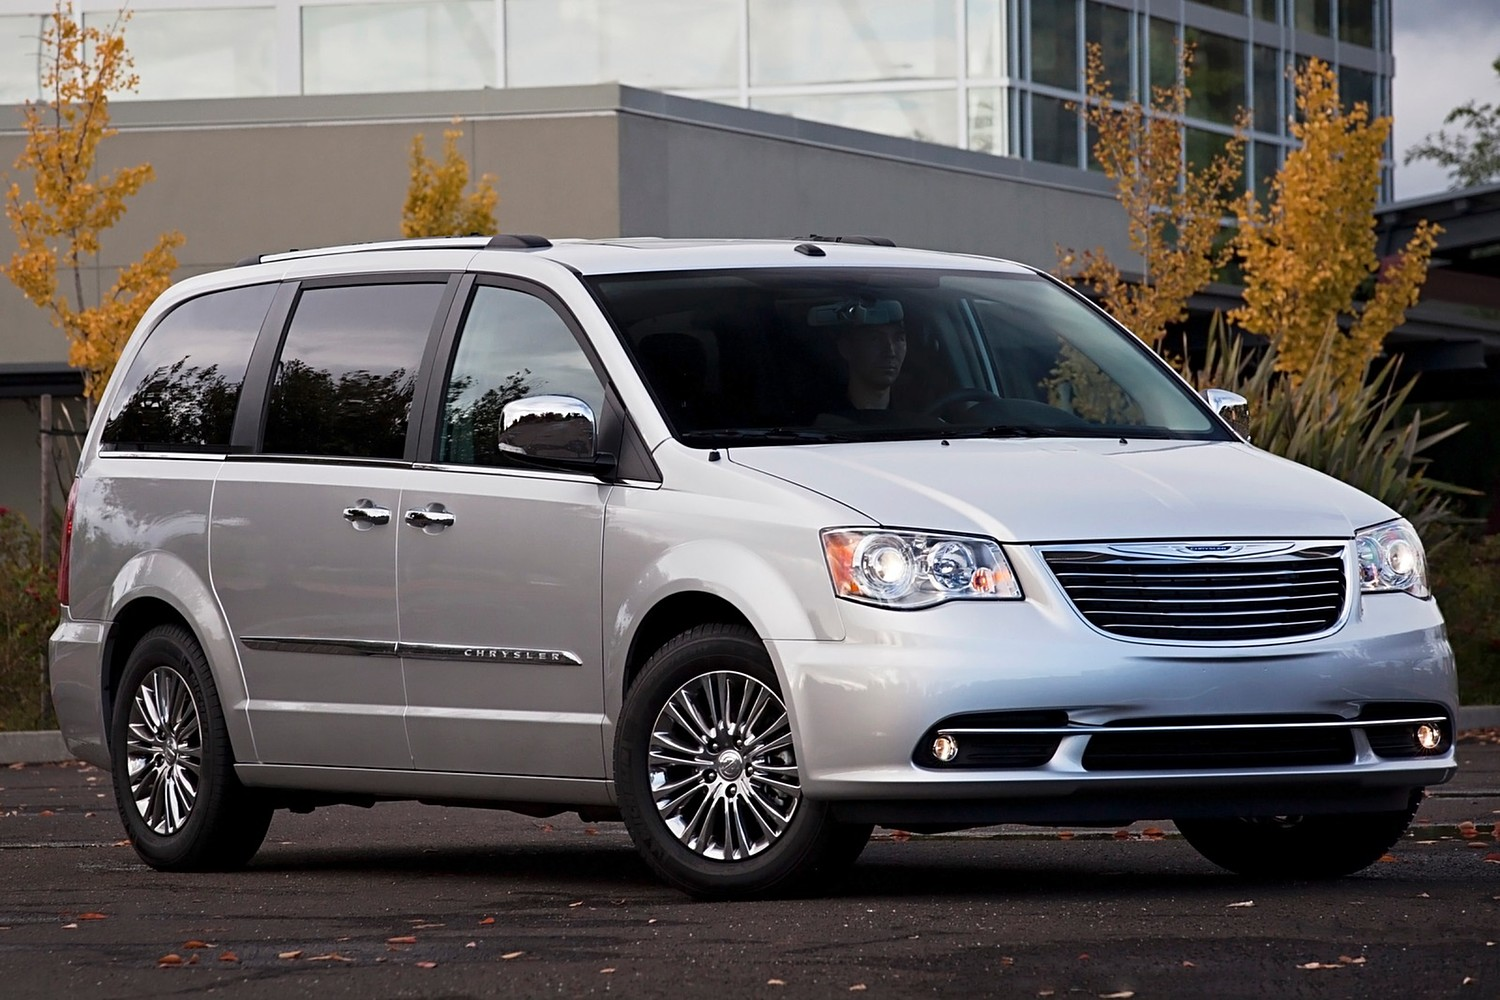 2016 Chrysler Town and Country Limited Passenger Minivan Exterior Shown